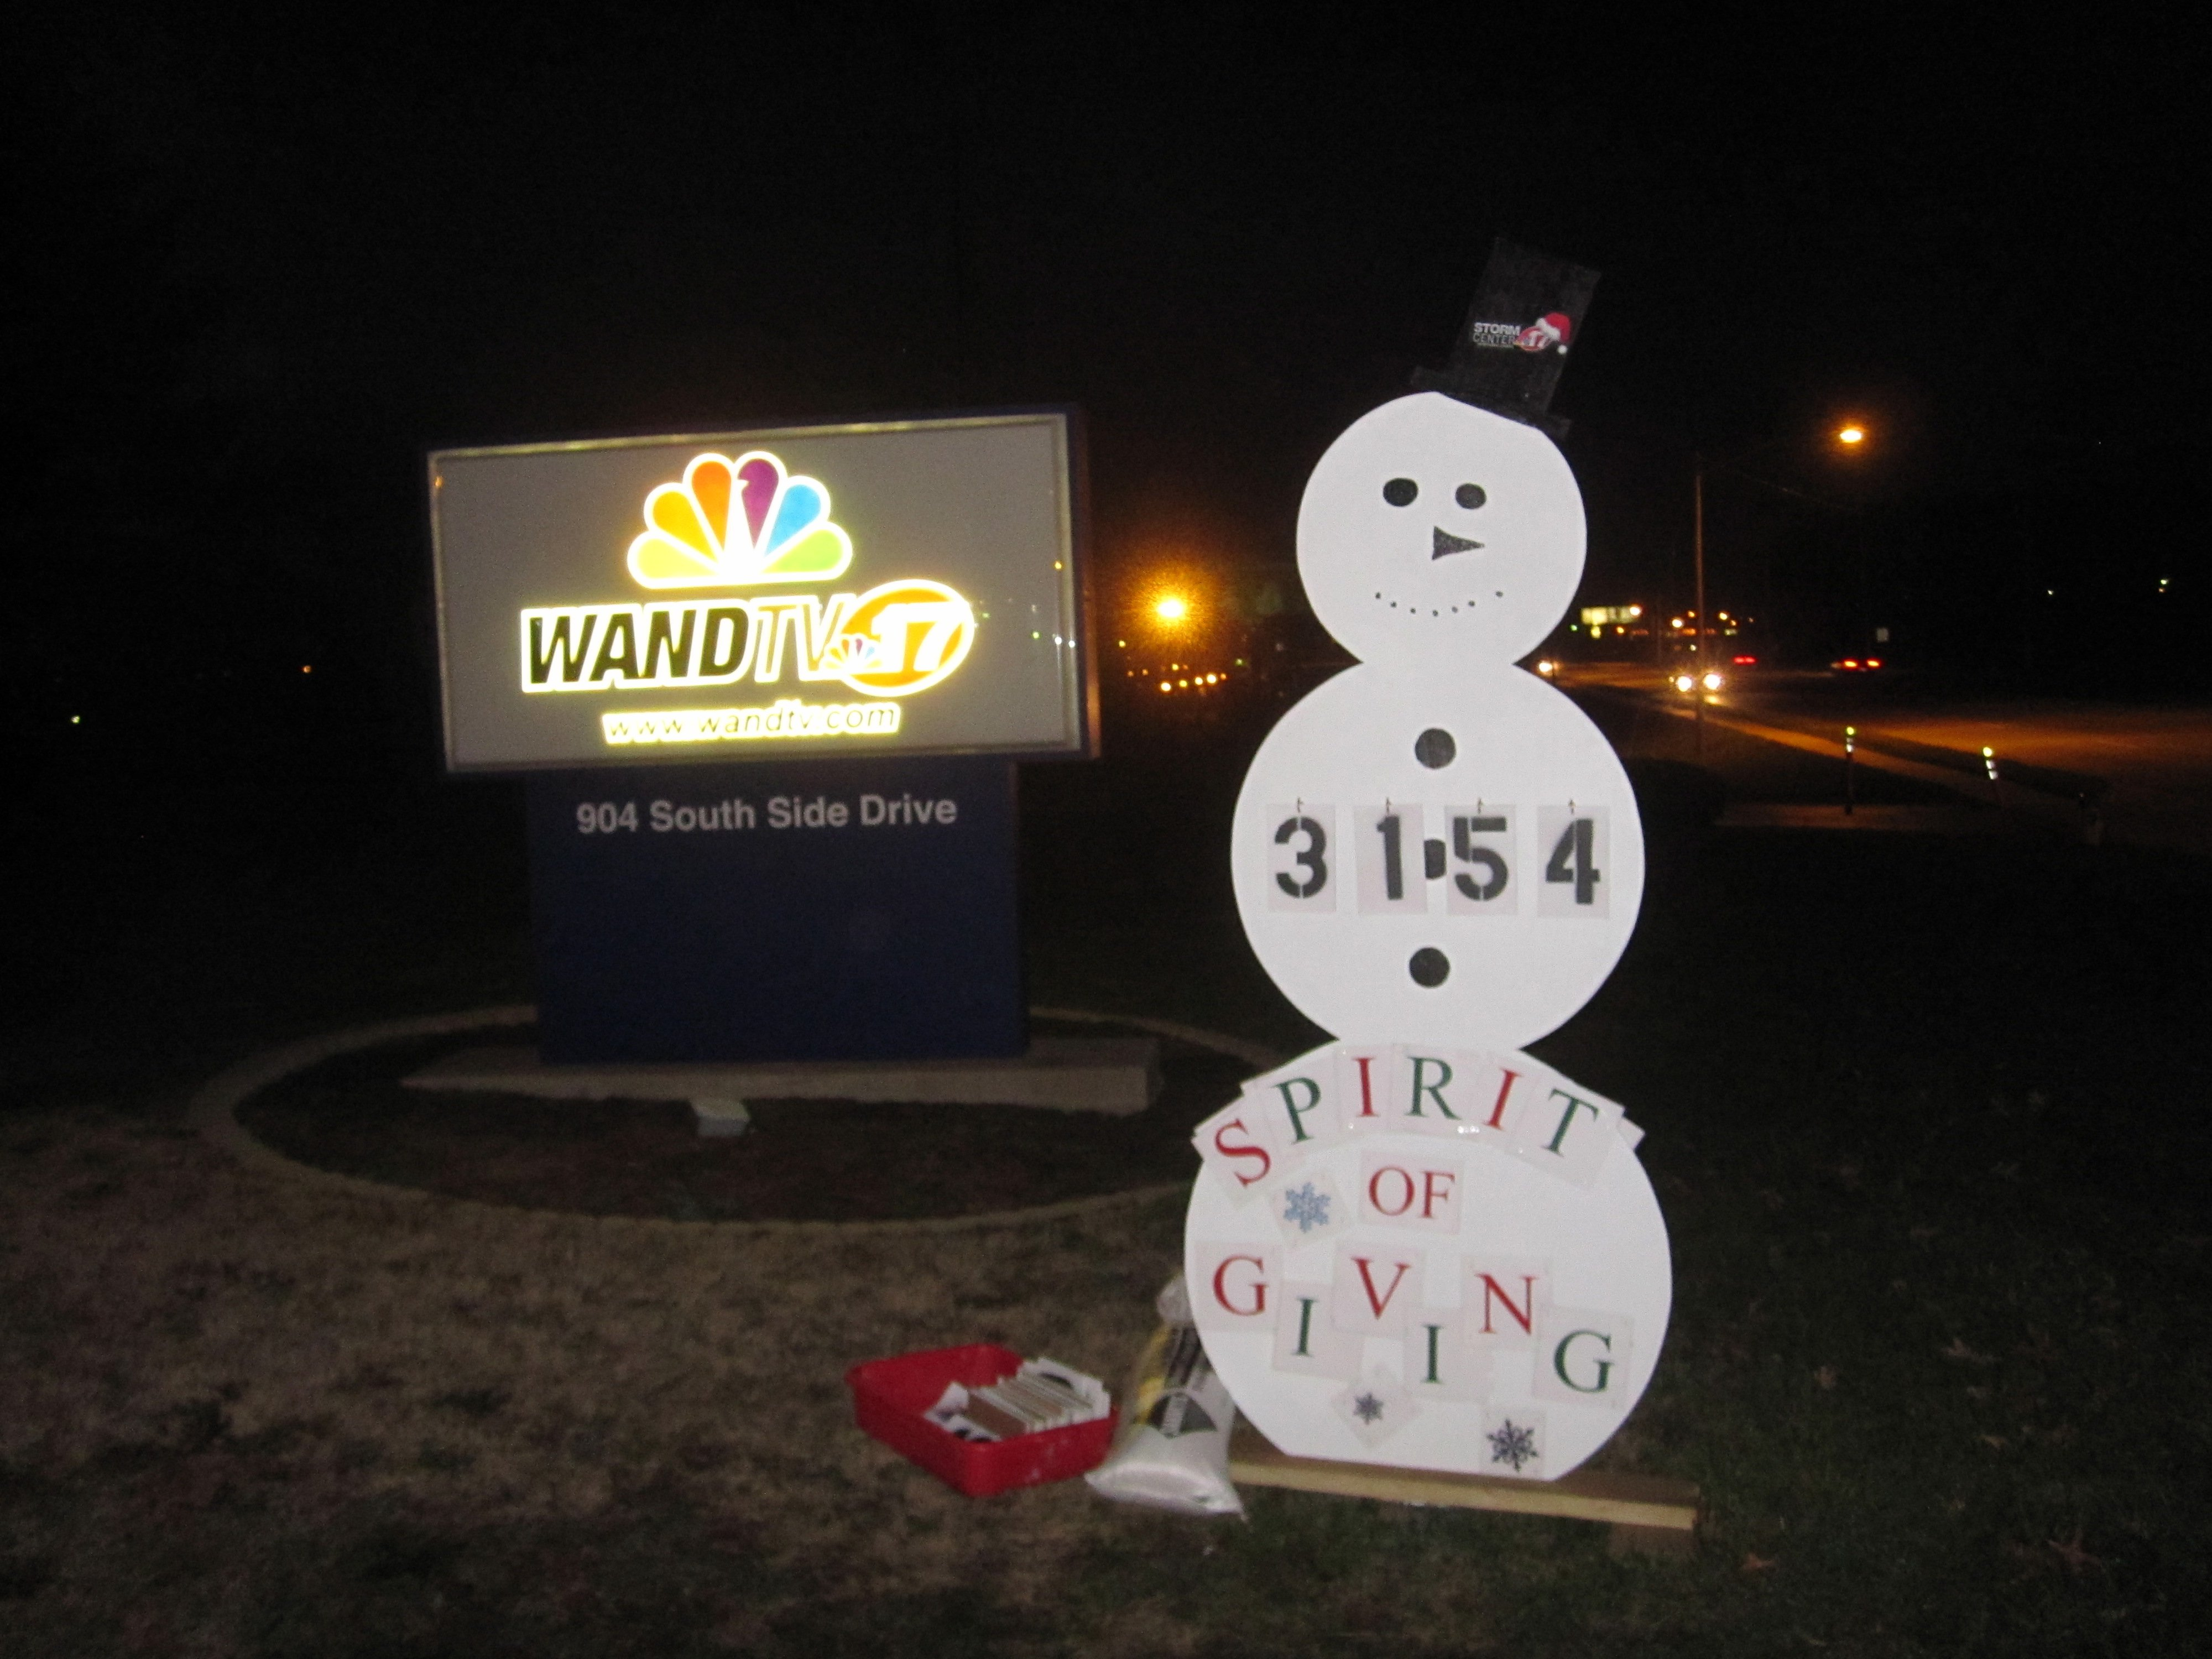 Spirit of Giving Collection for Toys for Tots  Wandtv